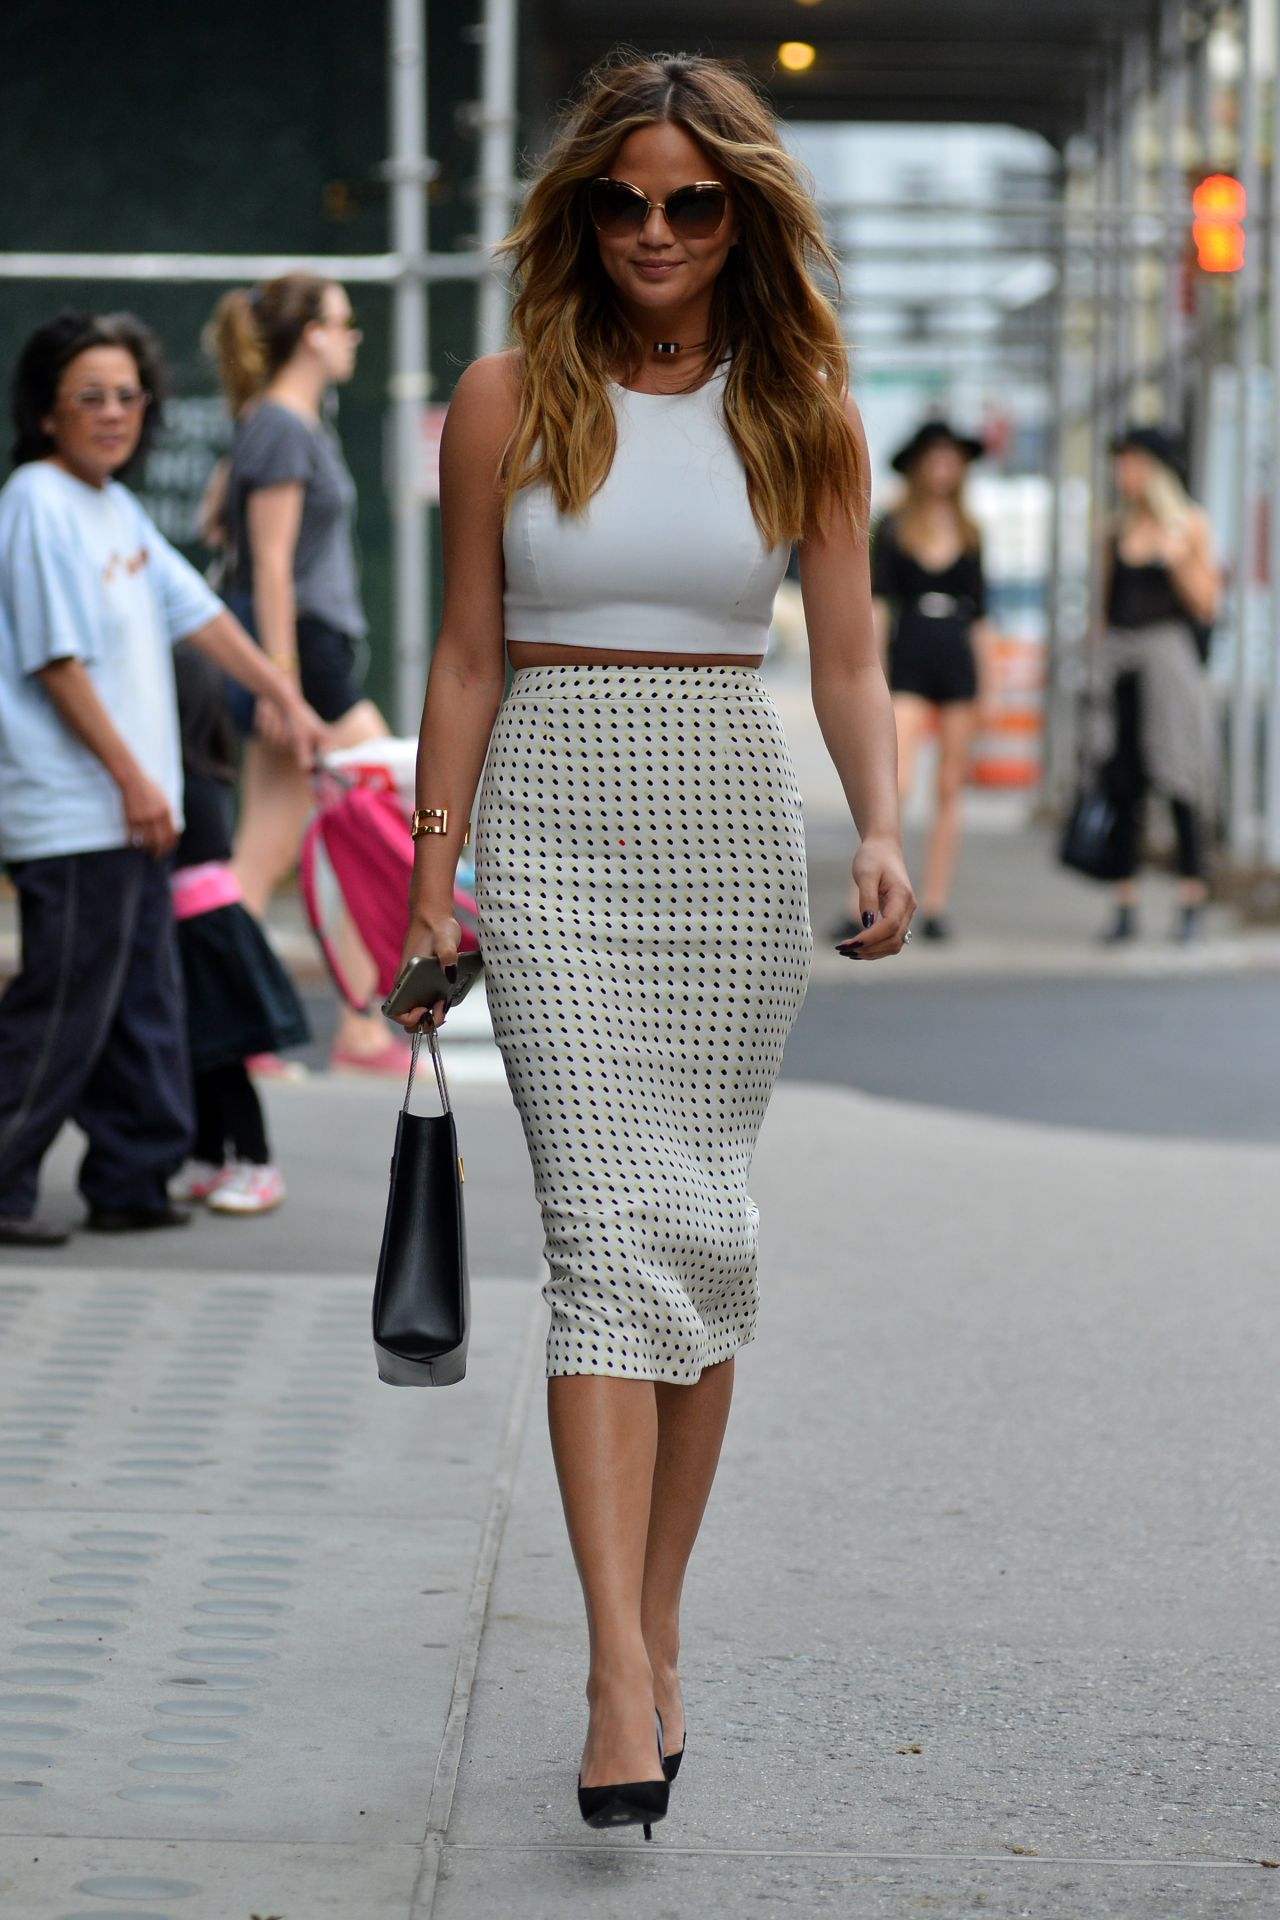 Chrissy Teigen Style – Out in Soho, in New York, May 2015